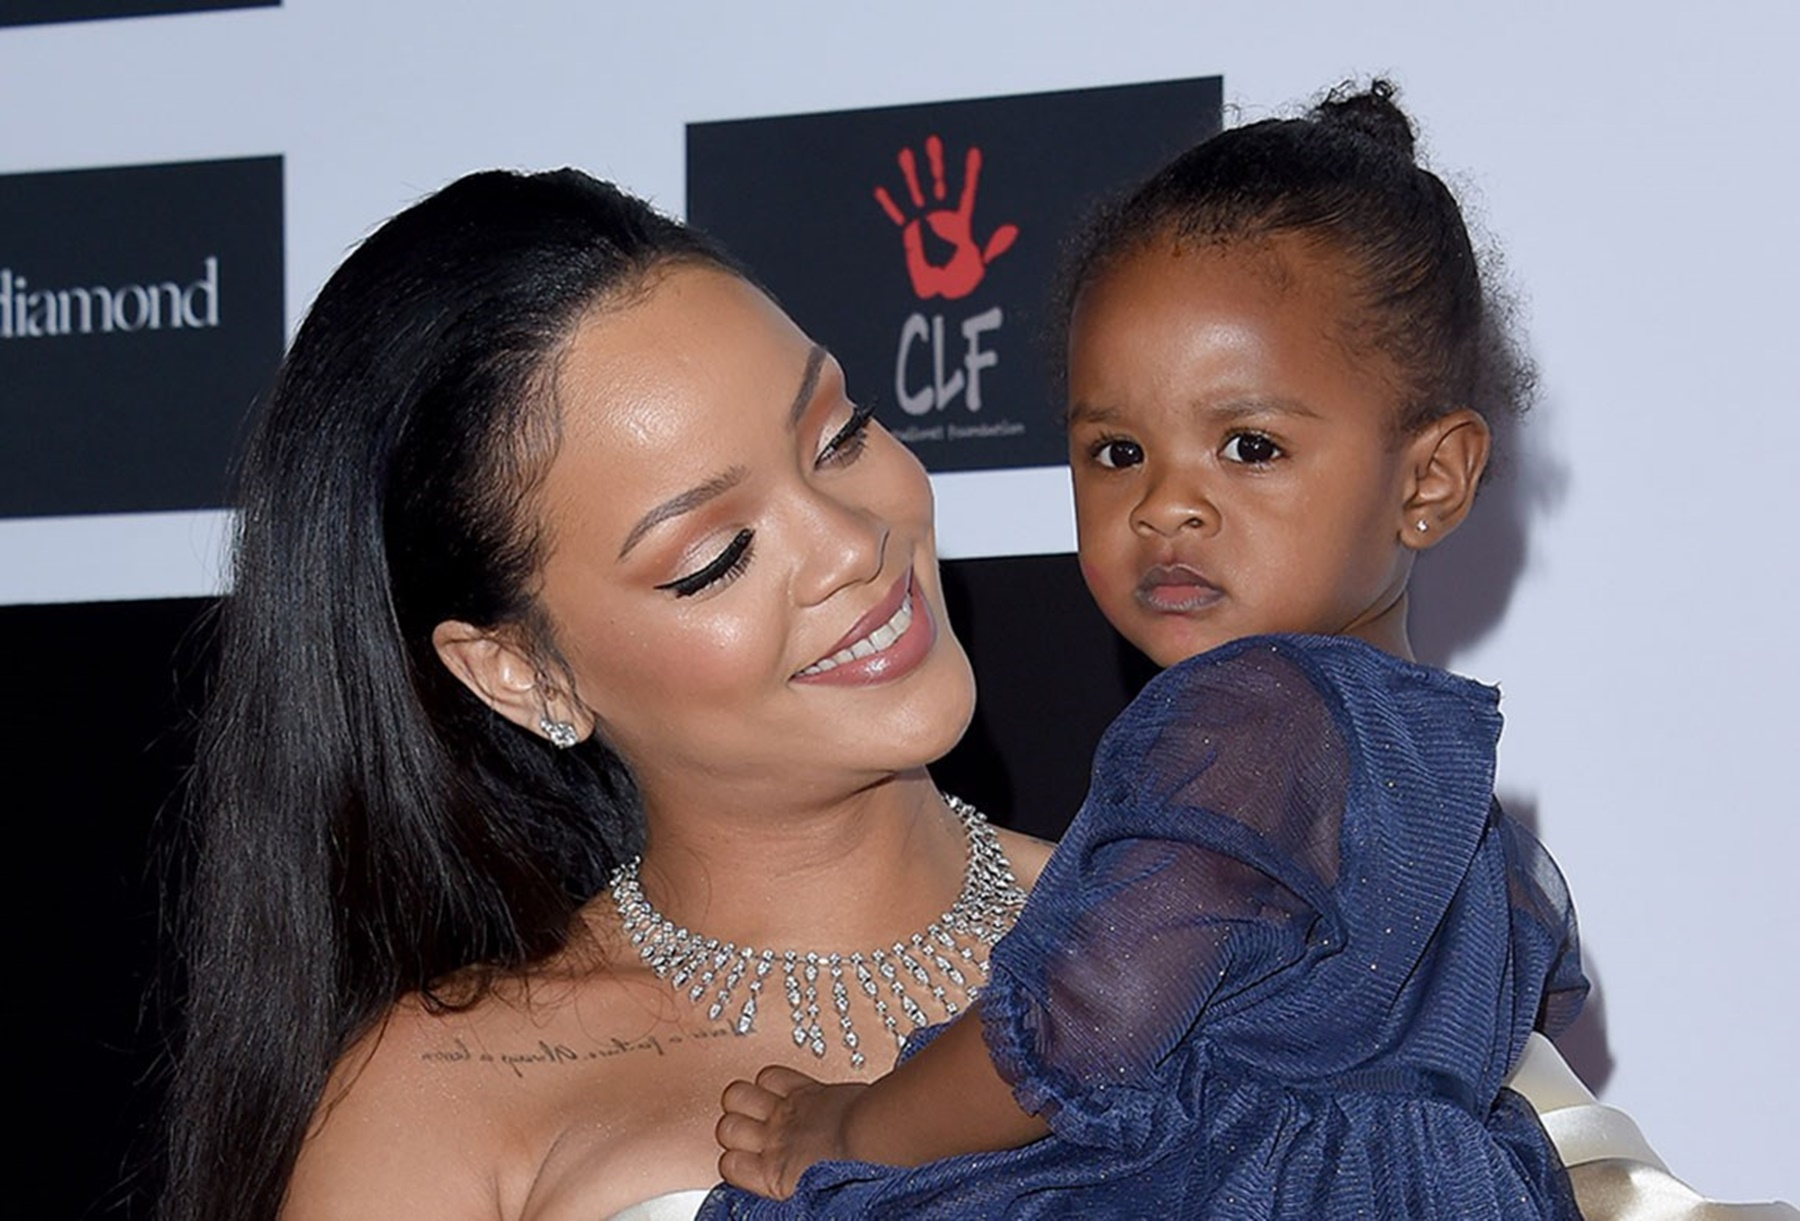 rihanna-sparks-pregnancy-rumor-with-swing-dress-in-cute-video-where-her-niece-majesty-is-taking-a-picture-is-she-making-big-plans-with-hassan-jameel